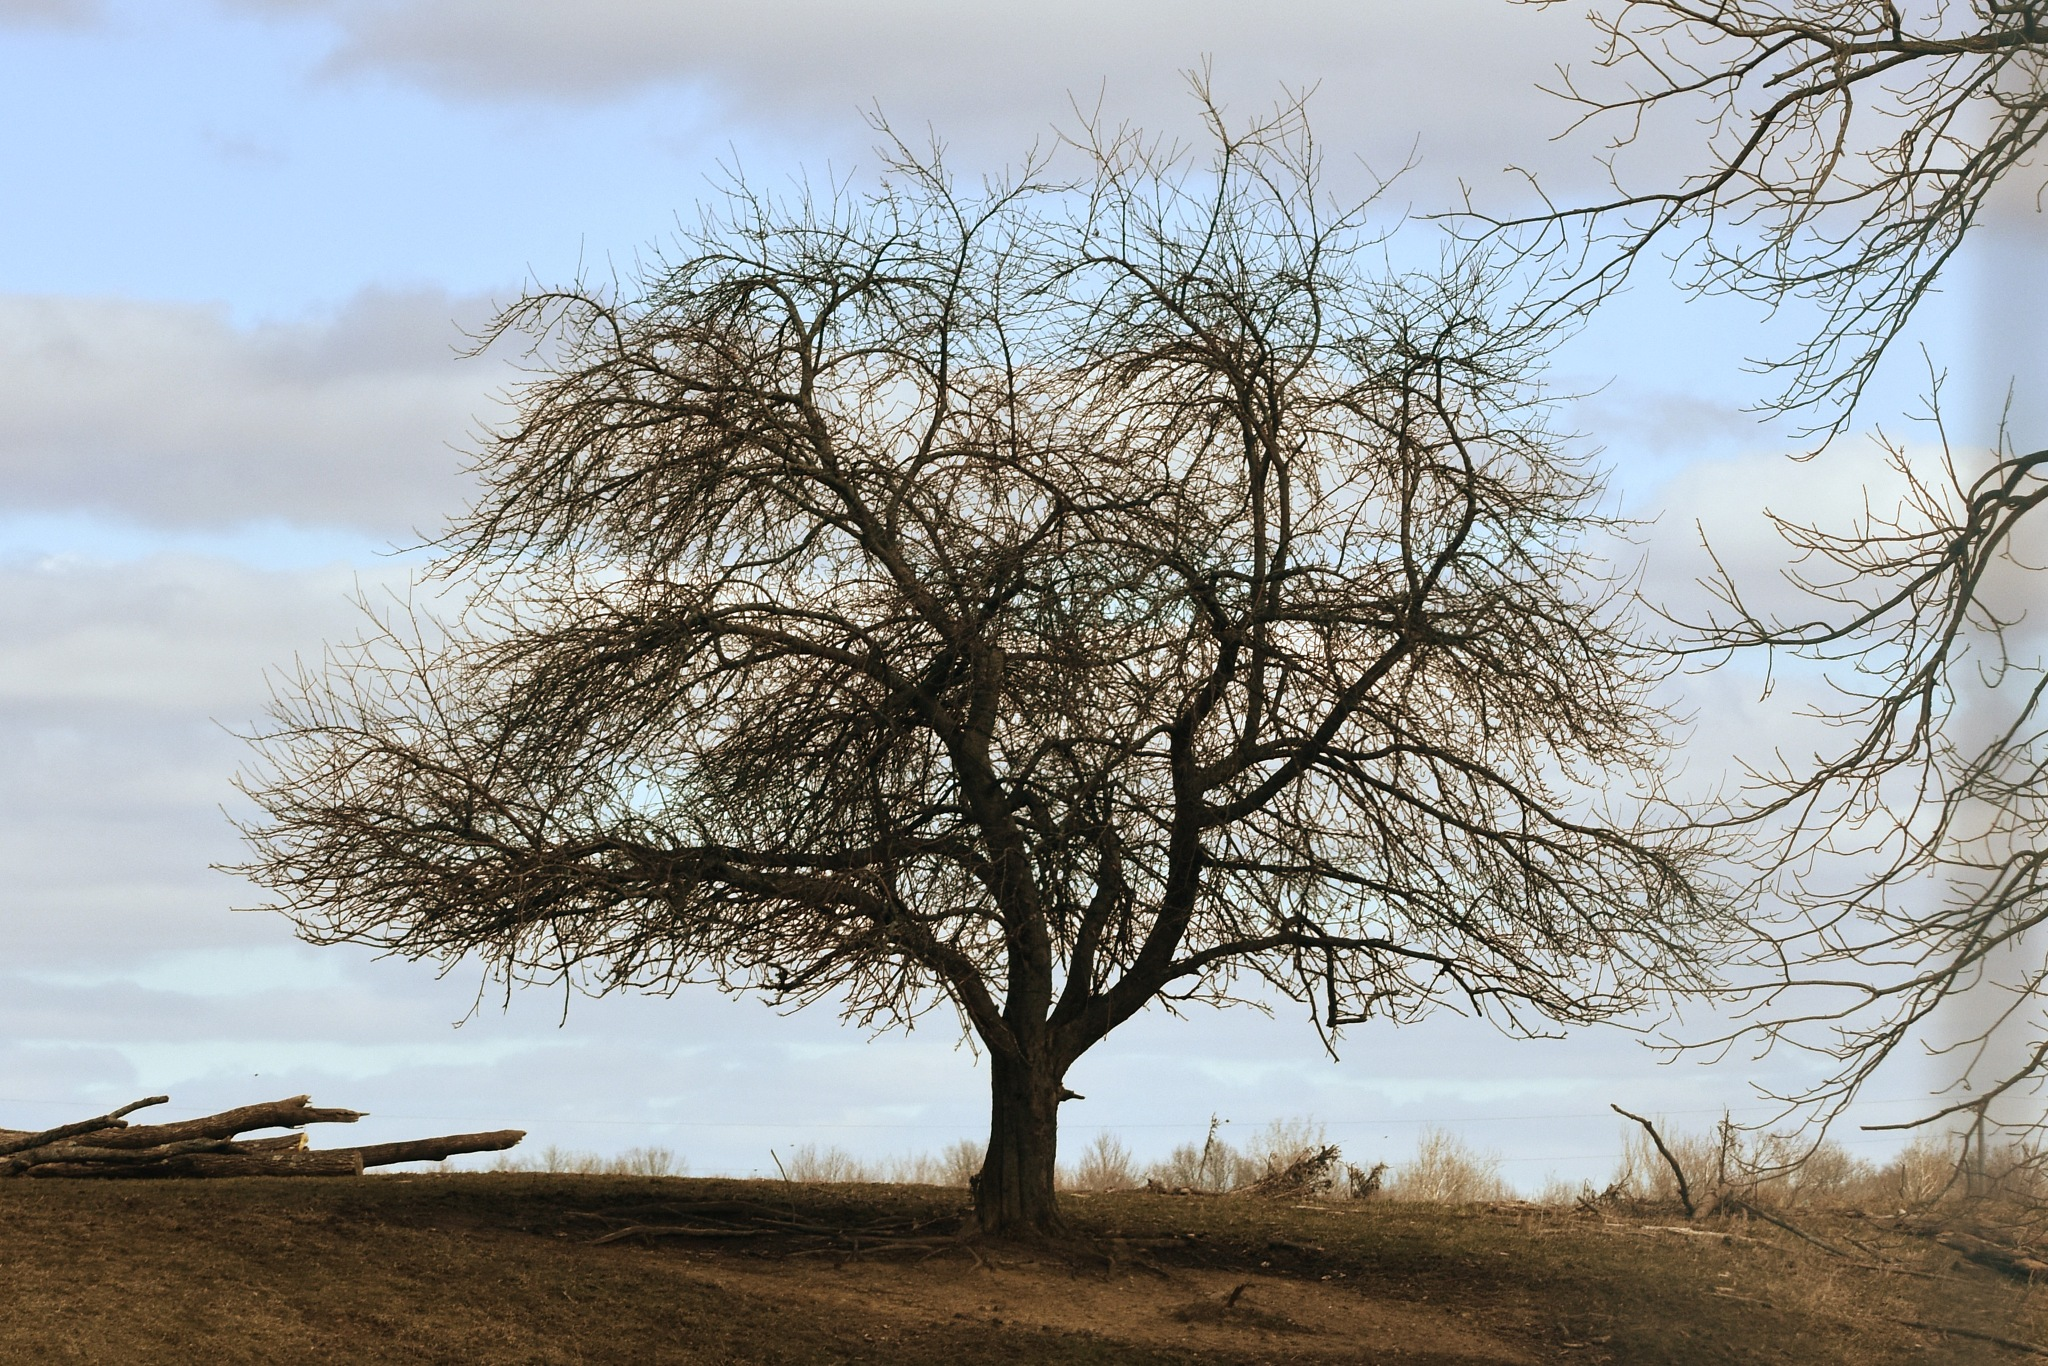 The Bare Tree by Renee Kennedy